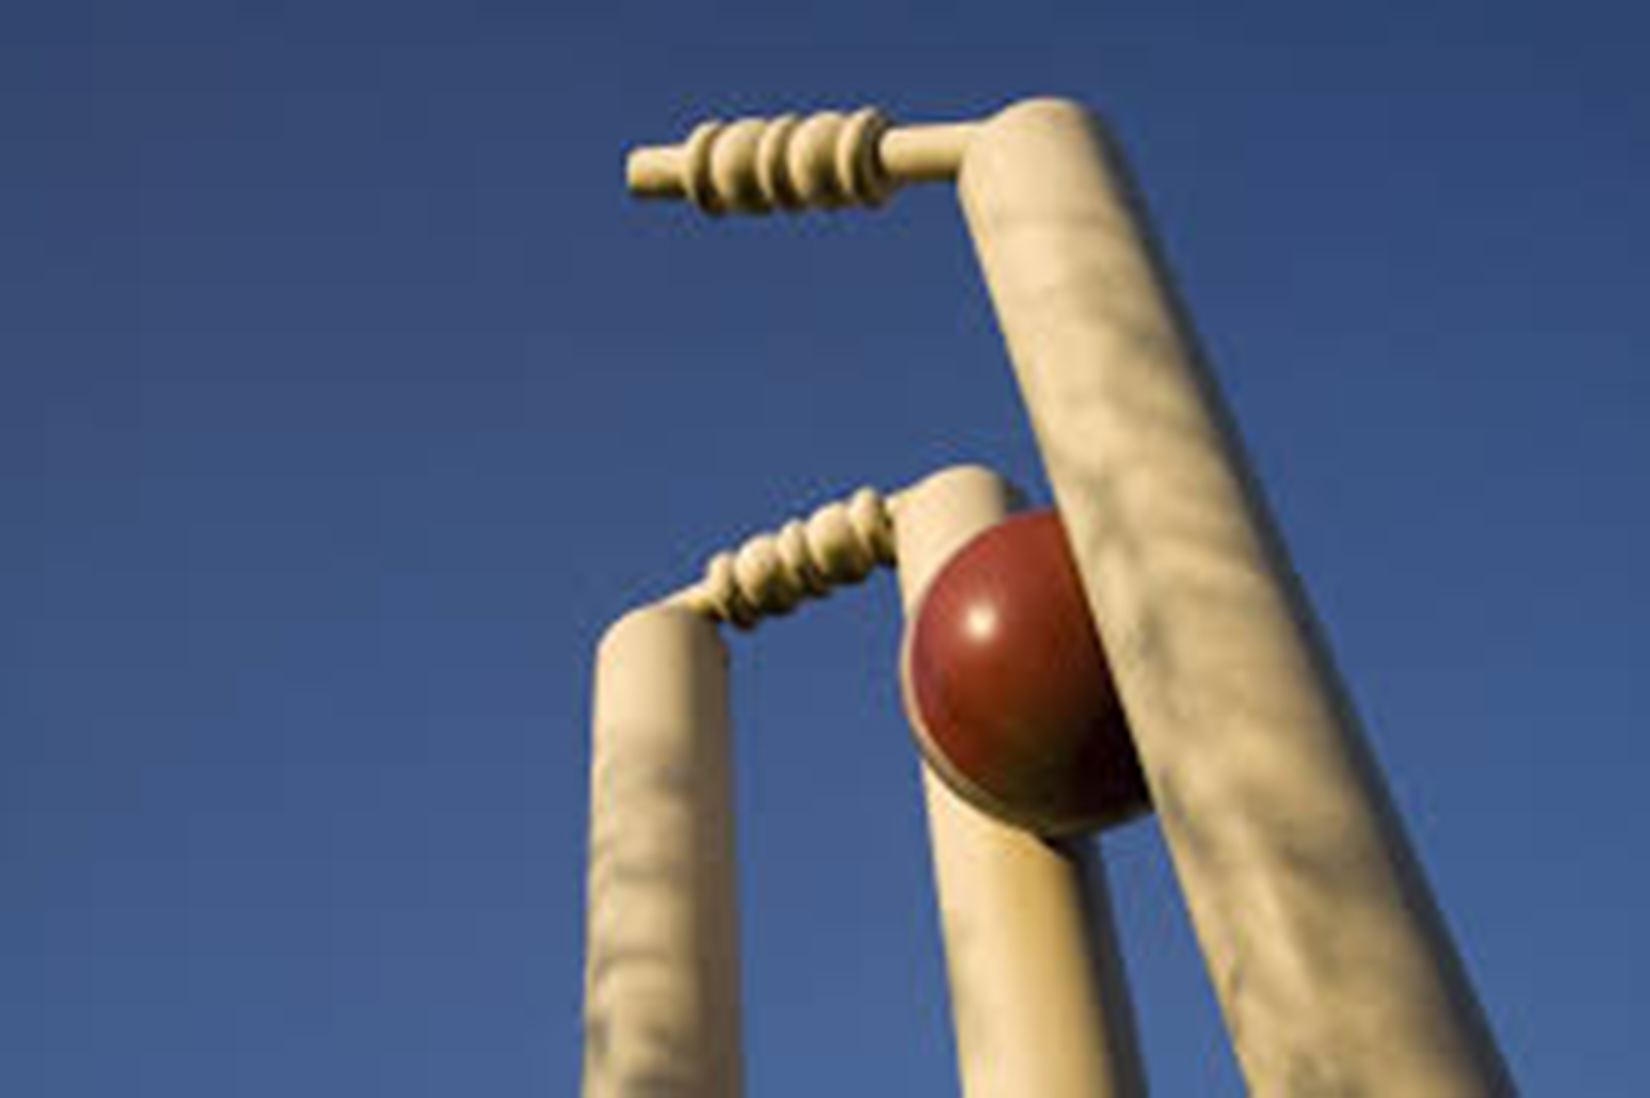 NET CALL: Pontardawe CC is inviting new players to come along pre-season training.